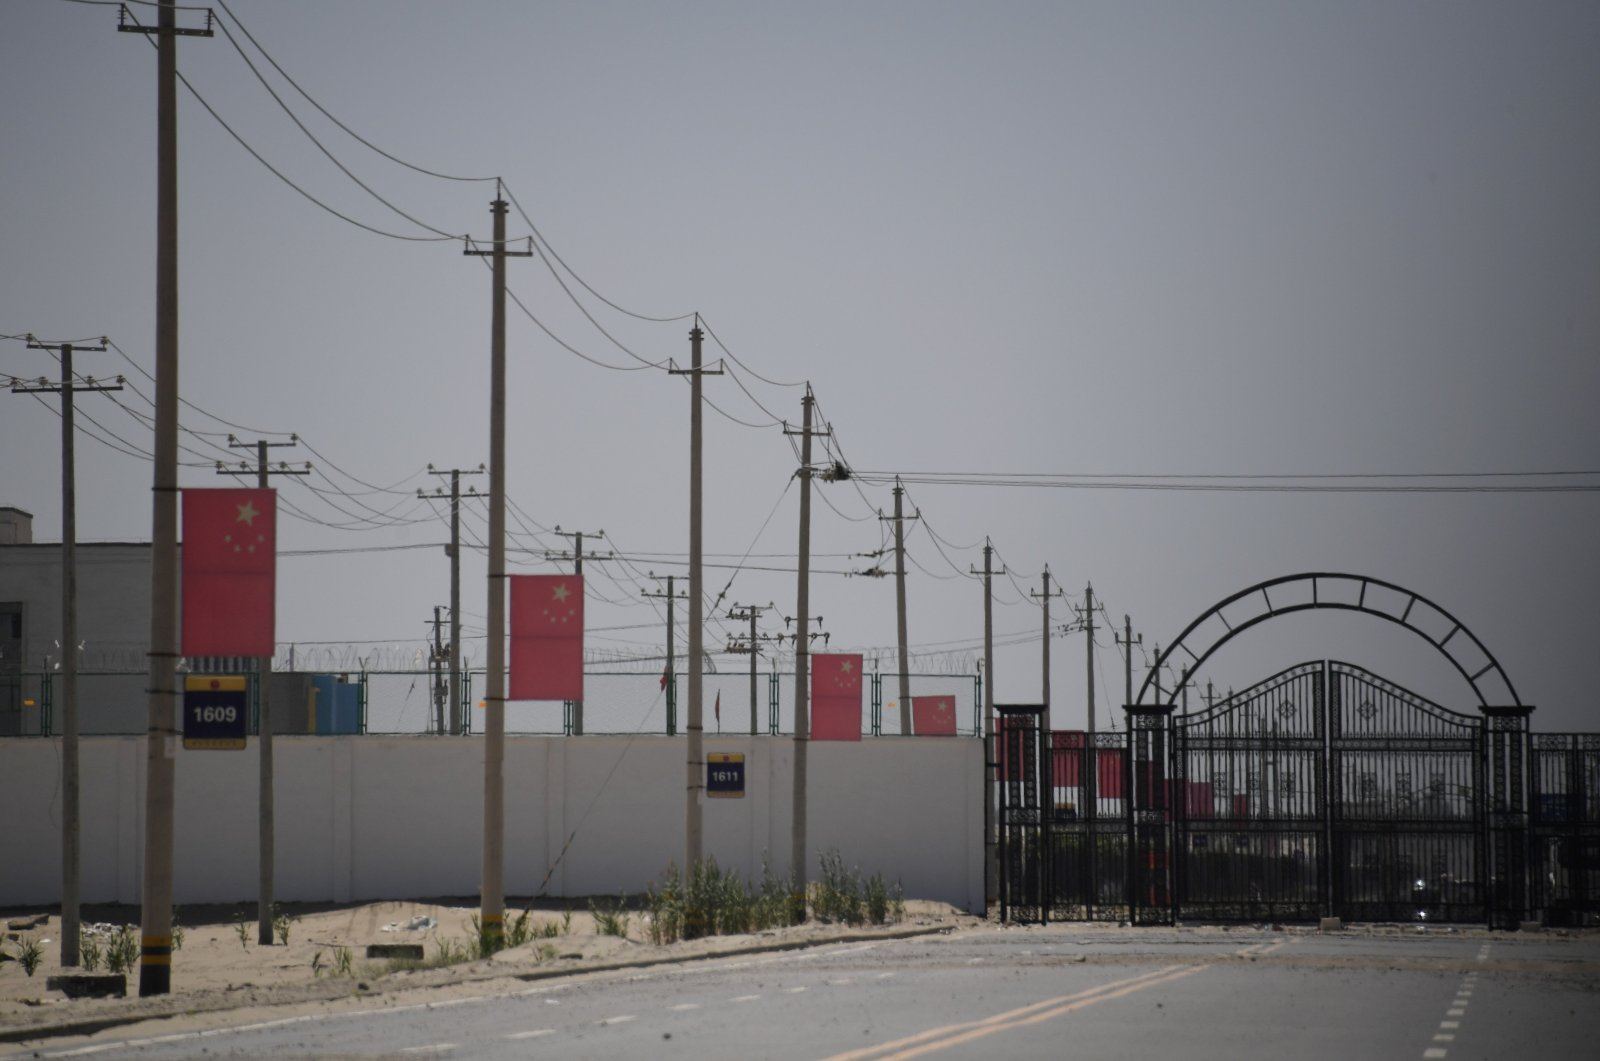 In this file photo, Chinese flags line a road leading to a facility believed to be a re-education camp where mostly Muslim ethnic minorities are detained, on the outskirts of Hotan in China's northwestern Xinjiang region, May 31, 2019. (AFP File Photo)